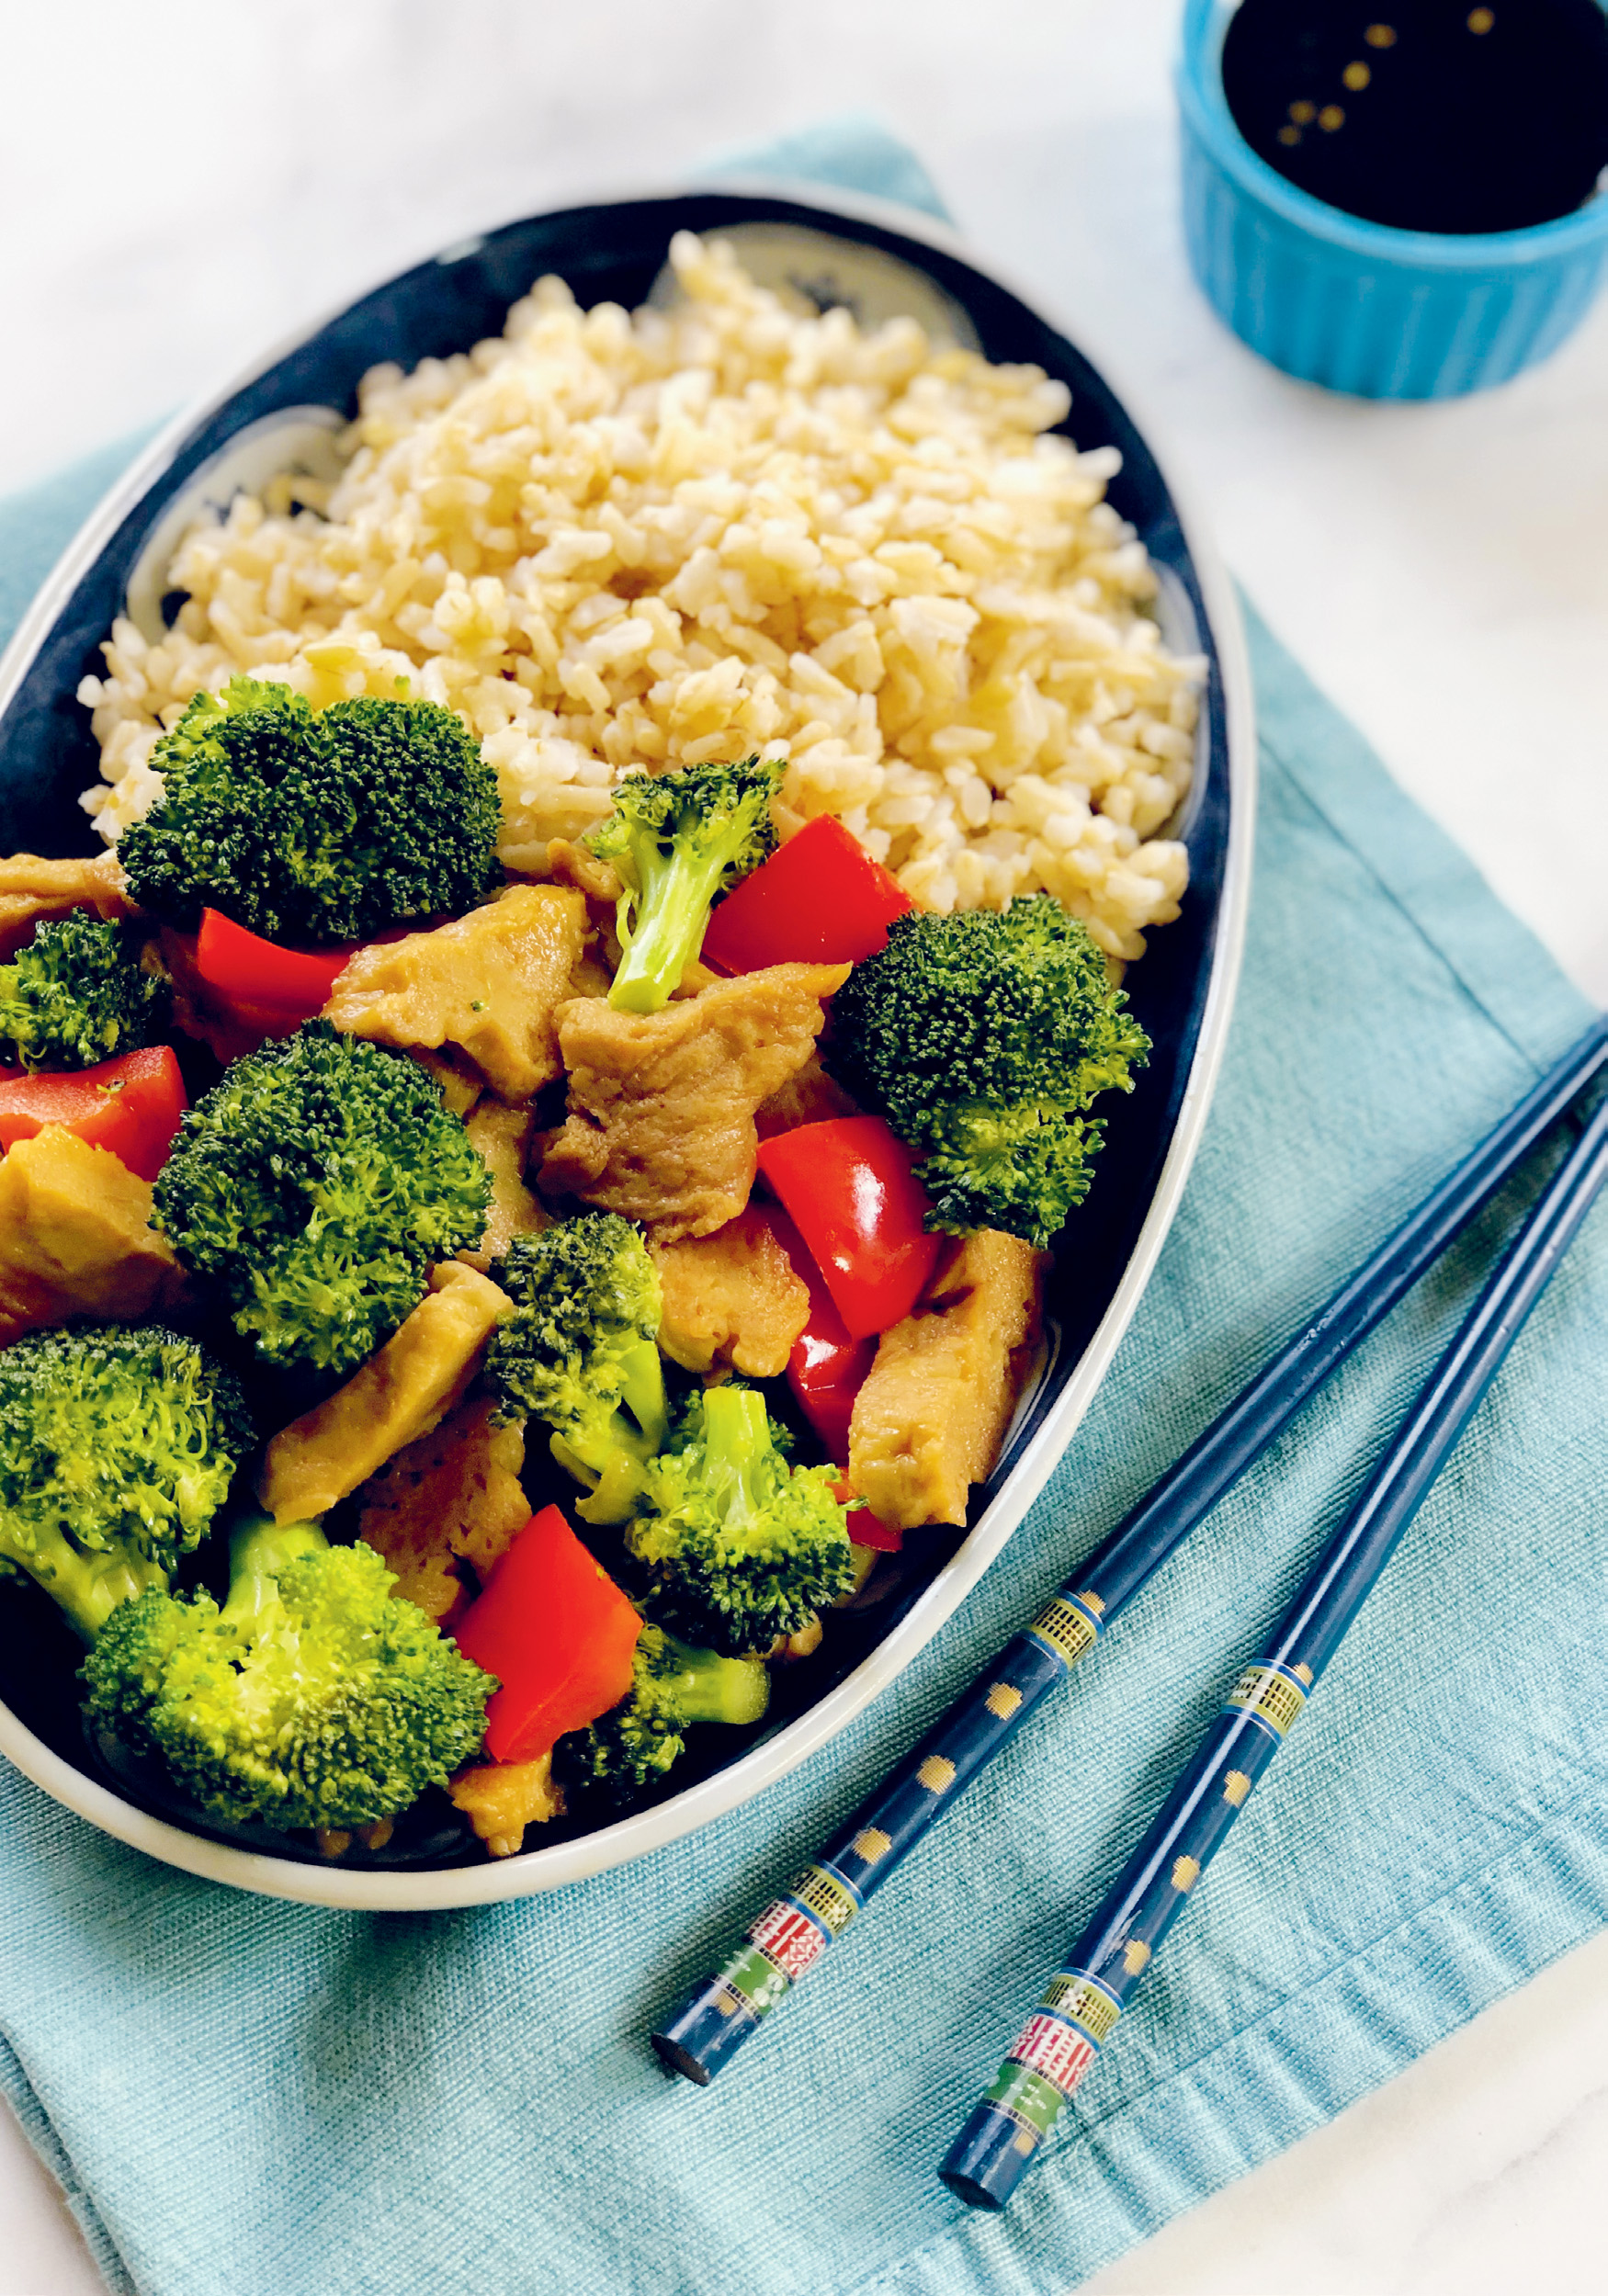 Seitan and Broccoli Stir Fry